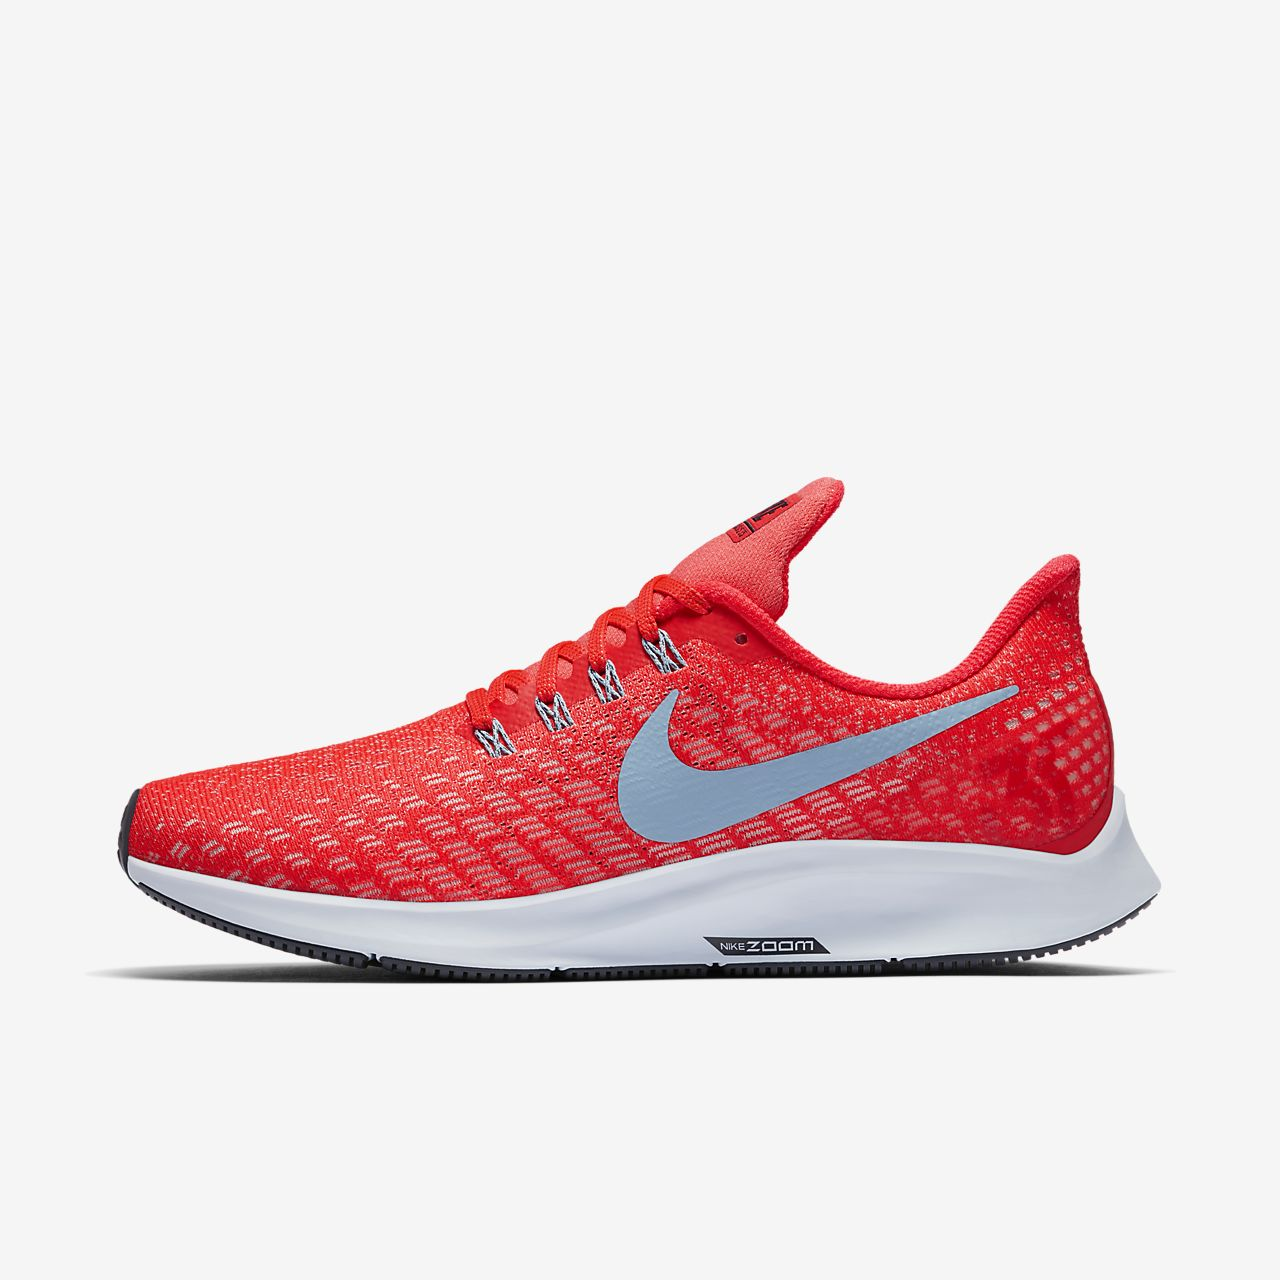 new product 4a648 f0efd ... Chaussure de running Nike Air Zoom Pegasus 35 pour Femme